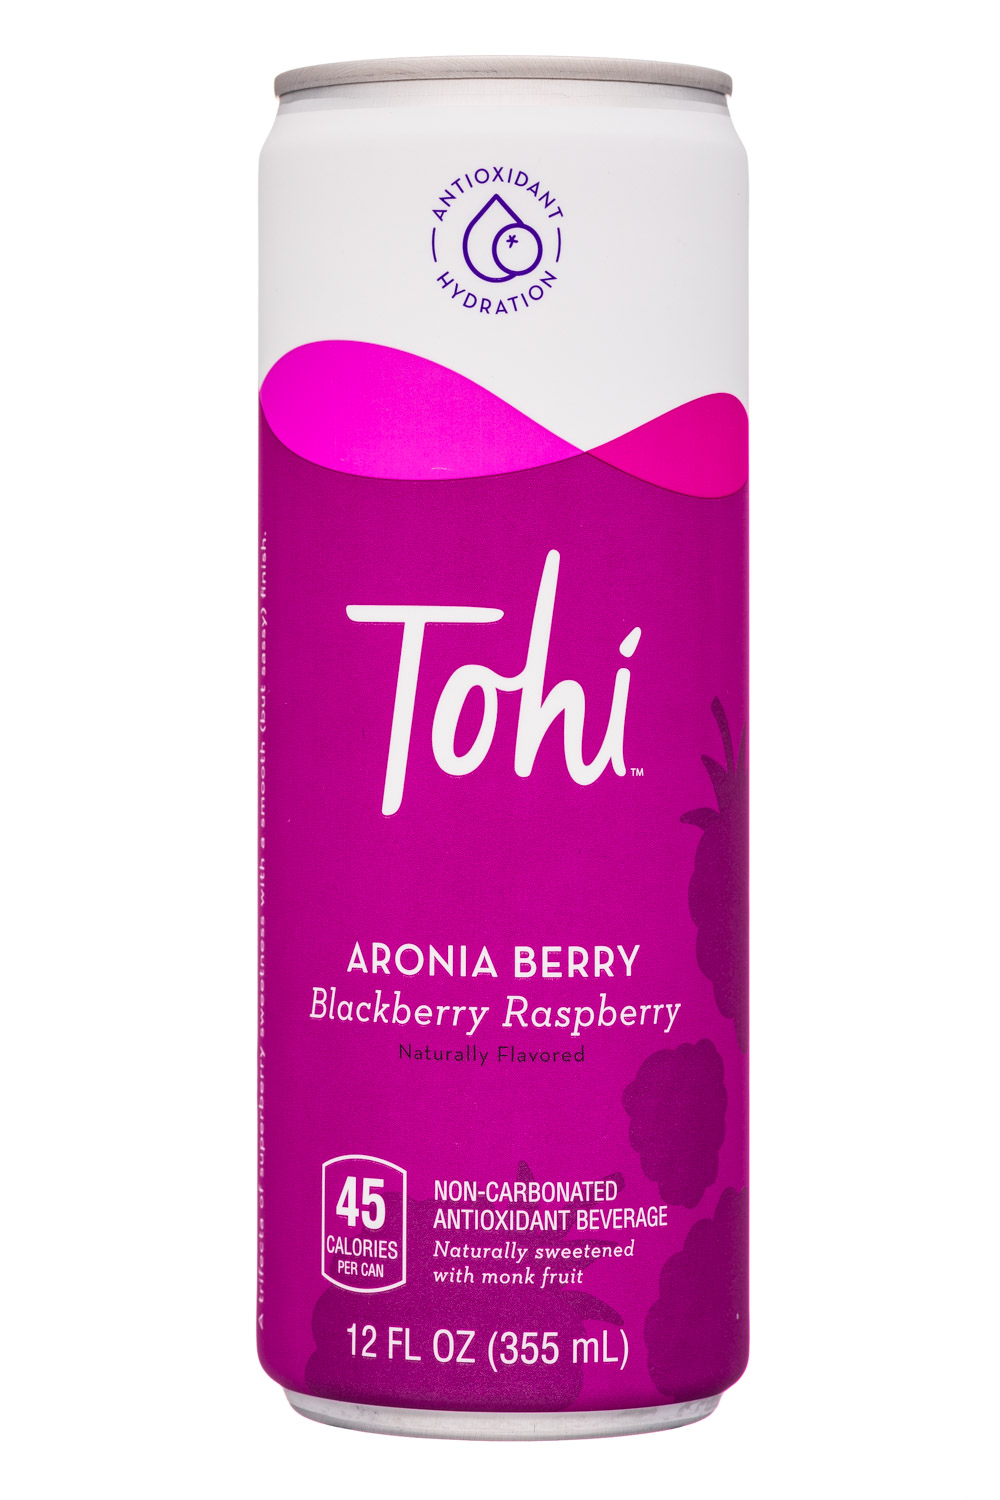 Aronia Berry - Blackberry Raspberry